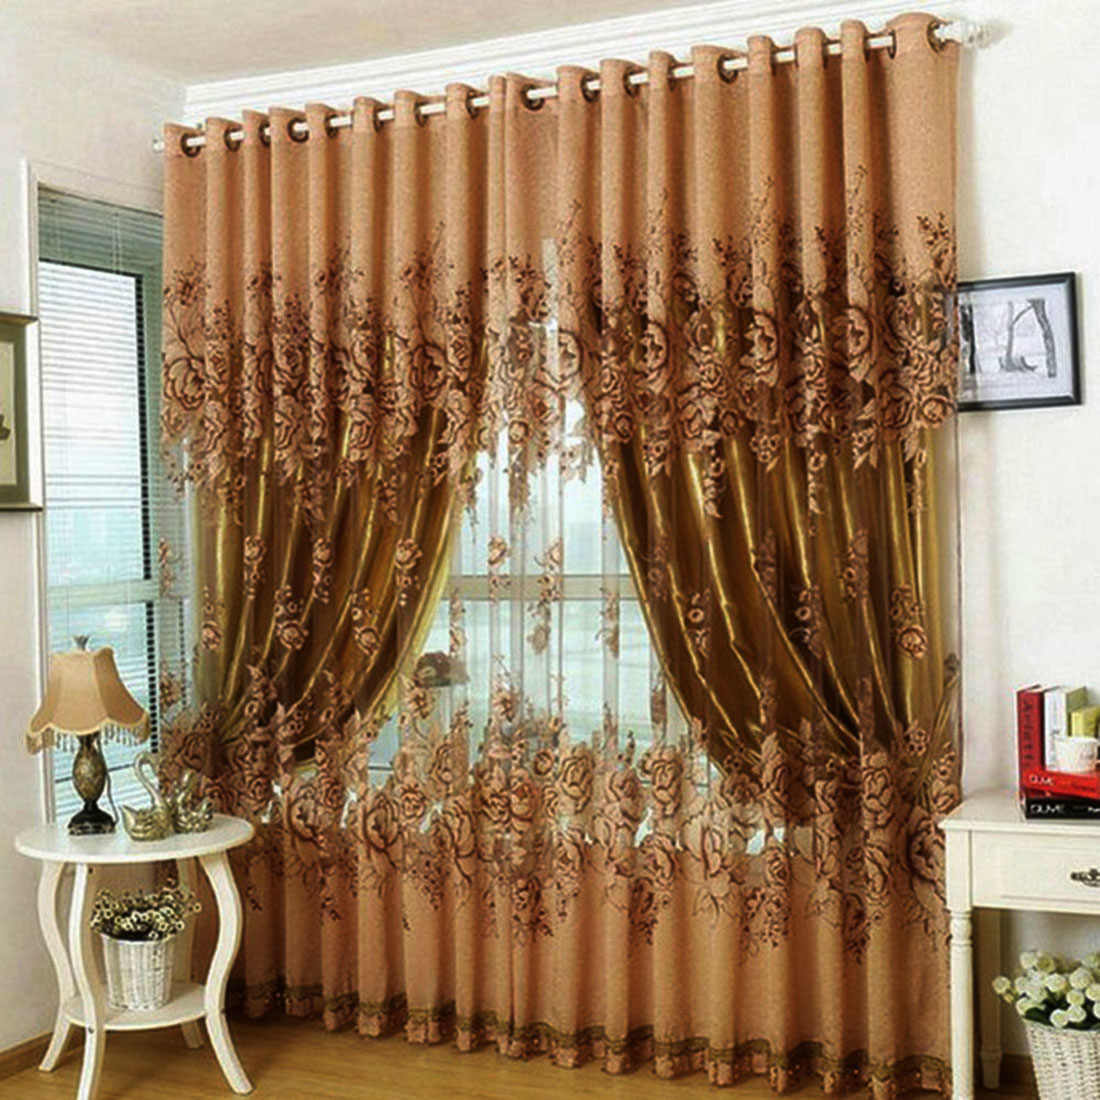 Fashion Modern Floral Tulle Living Room curtain(Brown) 250*100cm